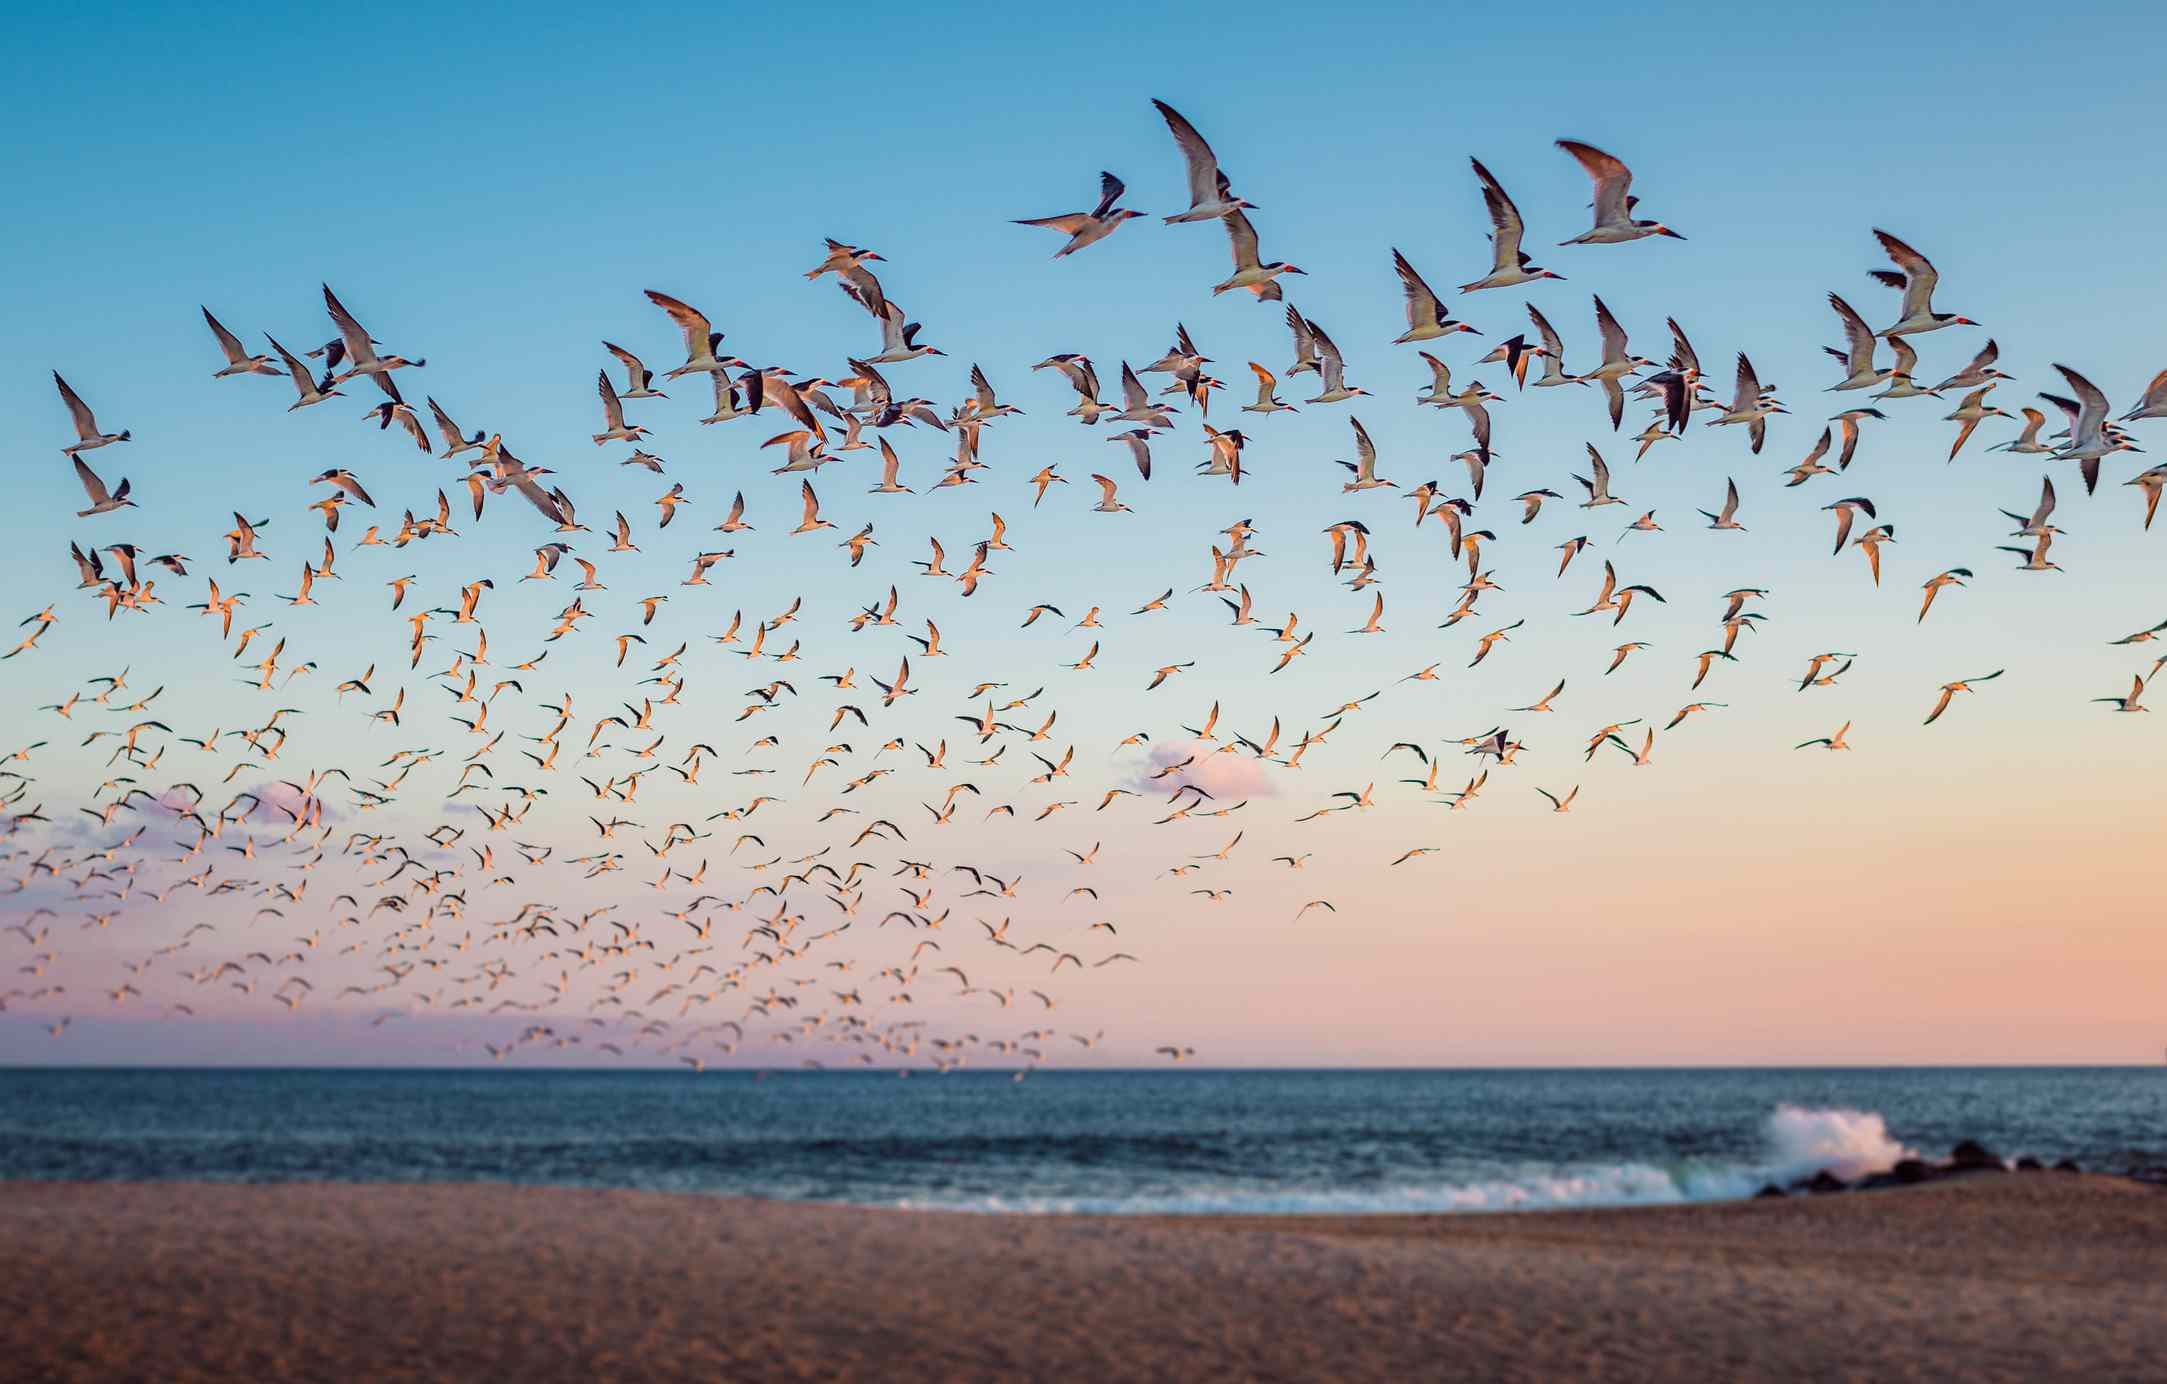 large flock of birds taking flight over the ocean's shore at Cape May with blue sky fading pink